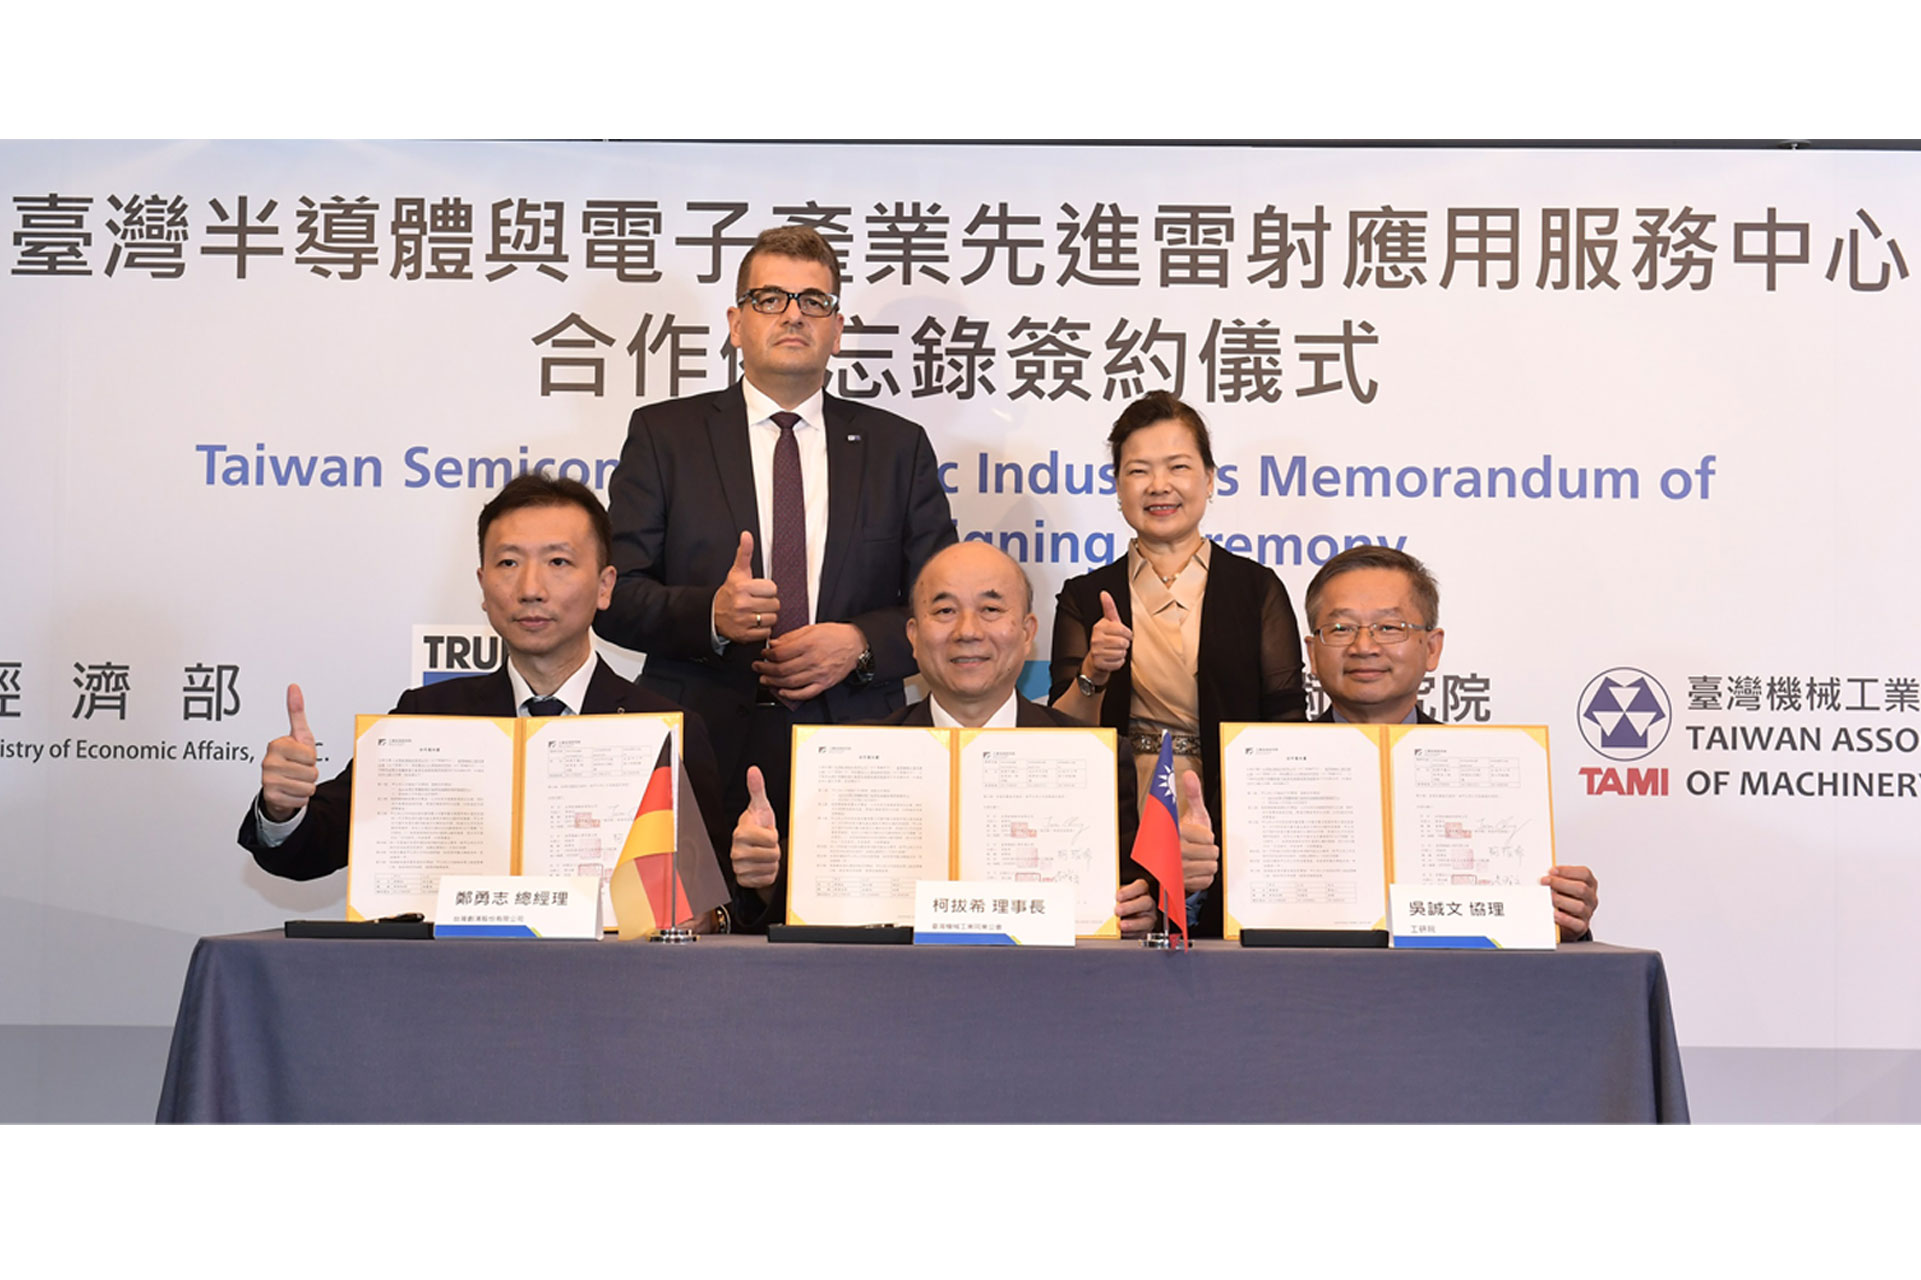 TRUMPF signed MOU with ITRI and TAMI to establish the Taiwan Laser Application Center in Tainan Photo-2